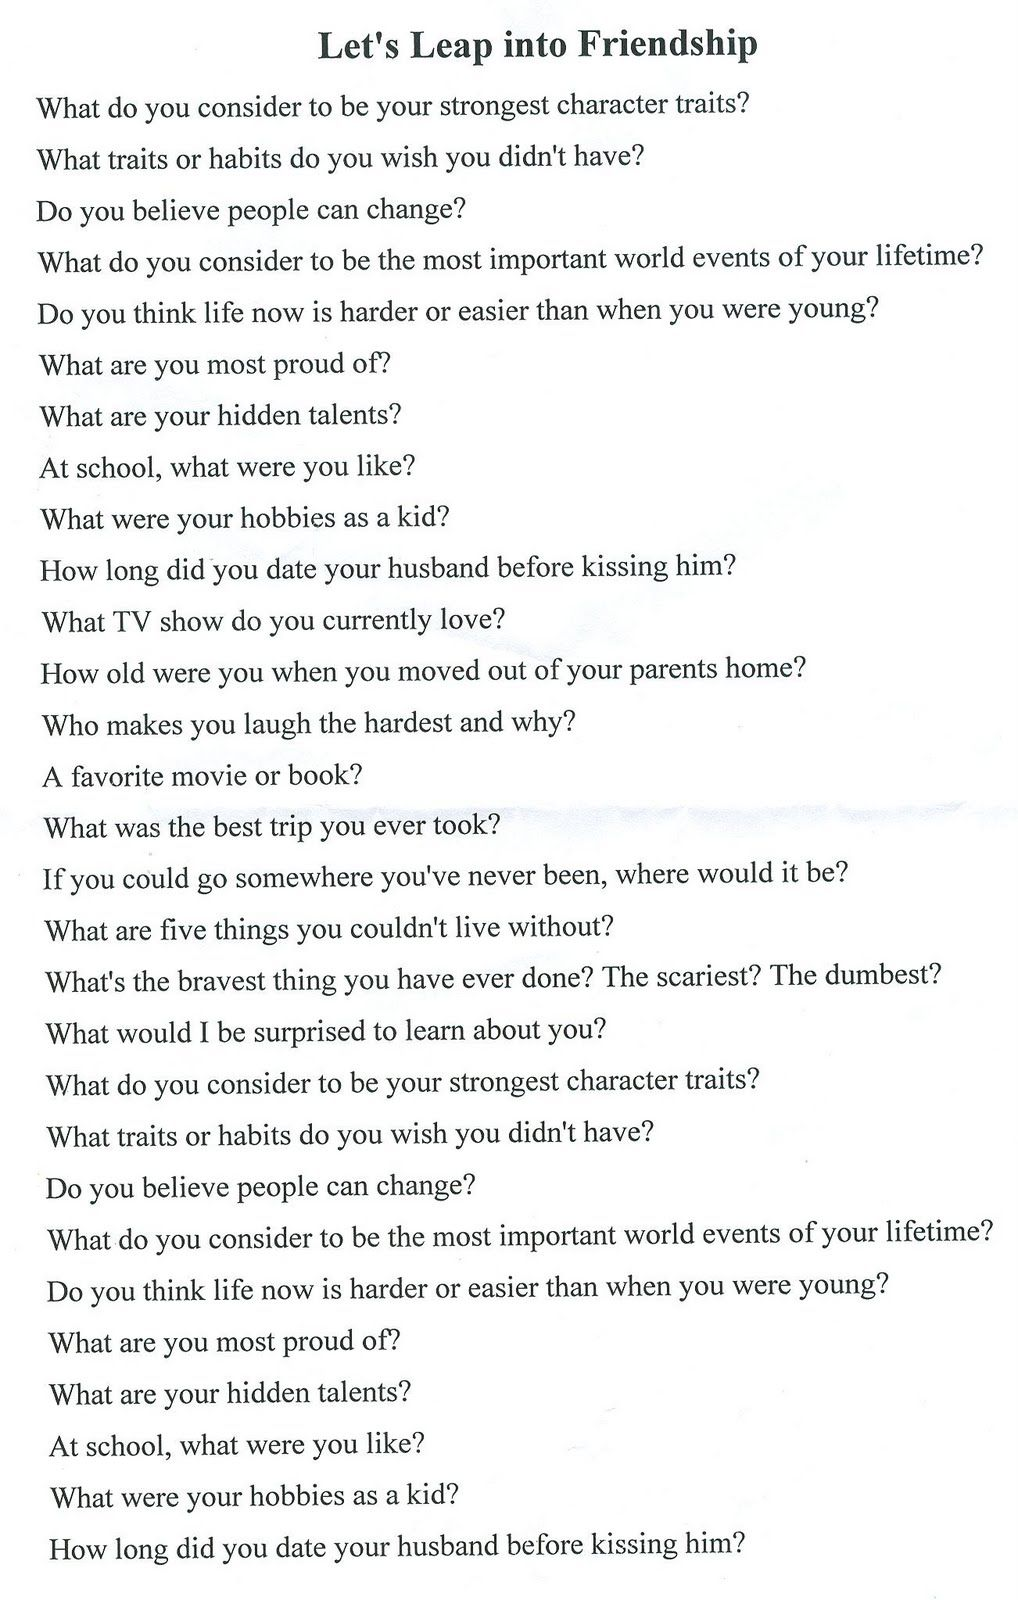 speed dating questions to ask